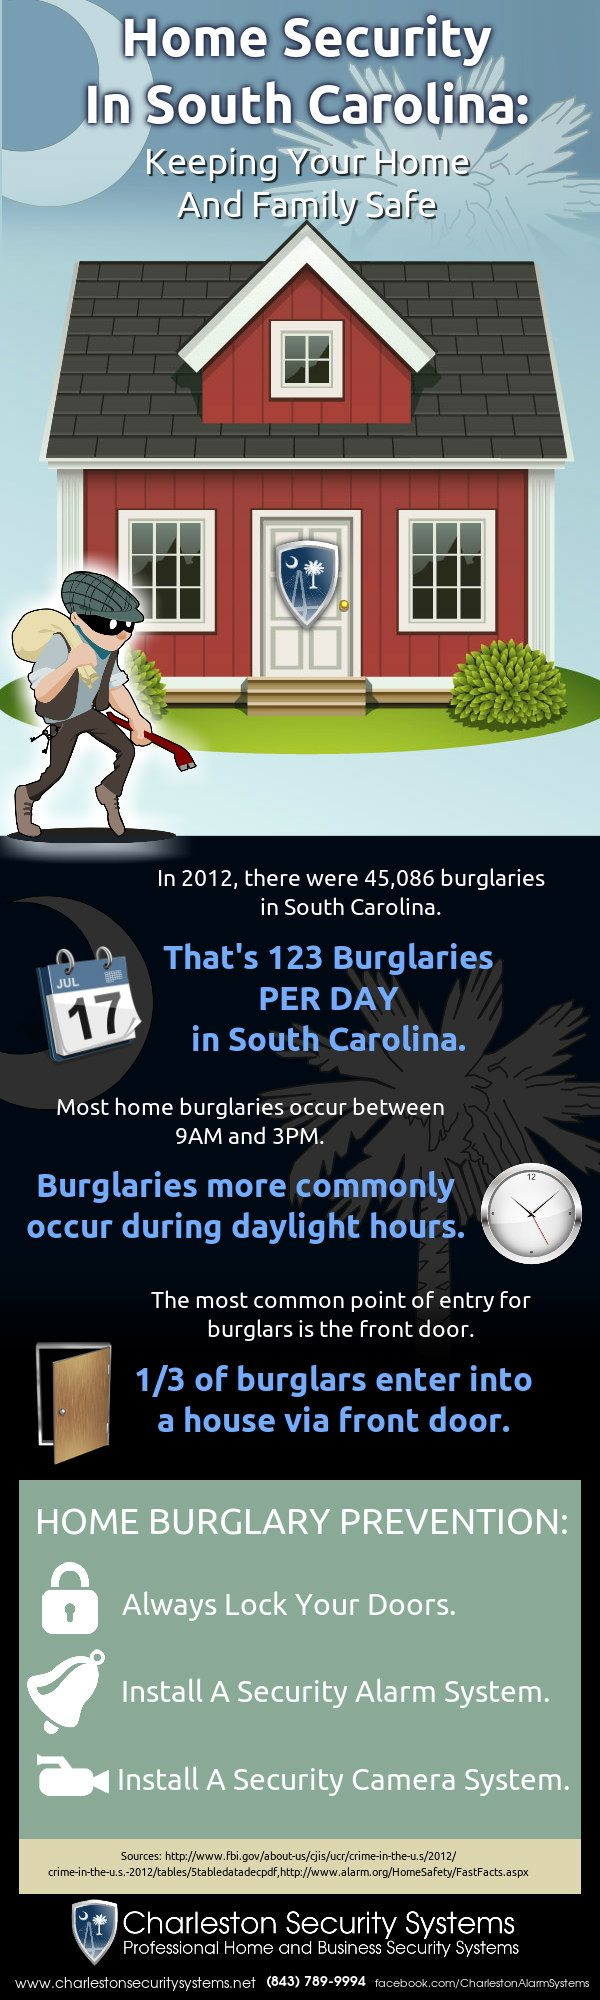 Home Security Charleston Infographic